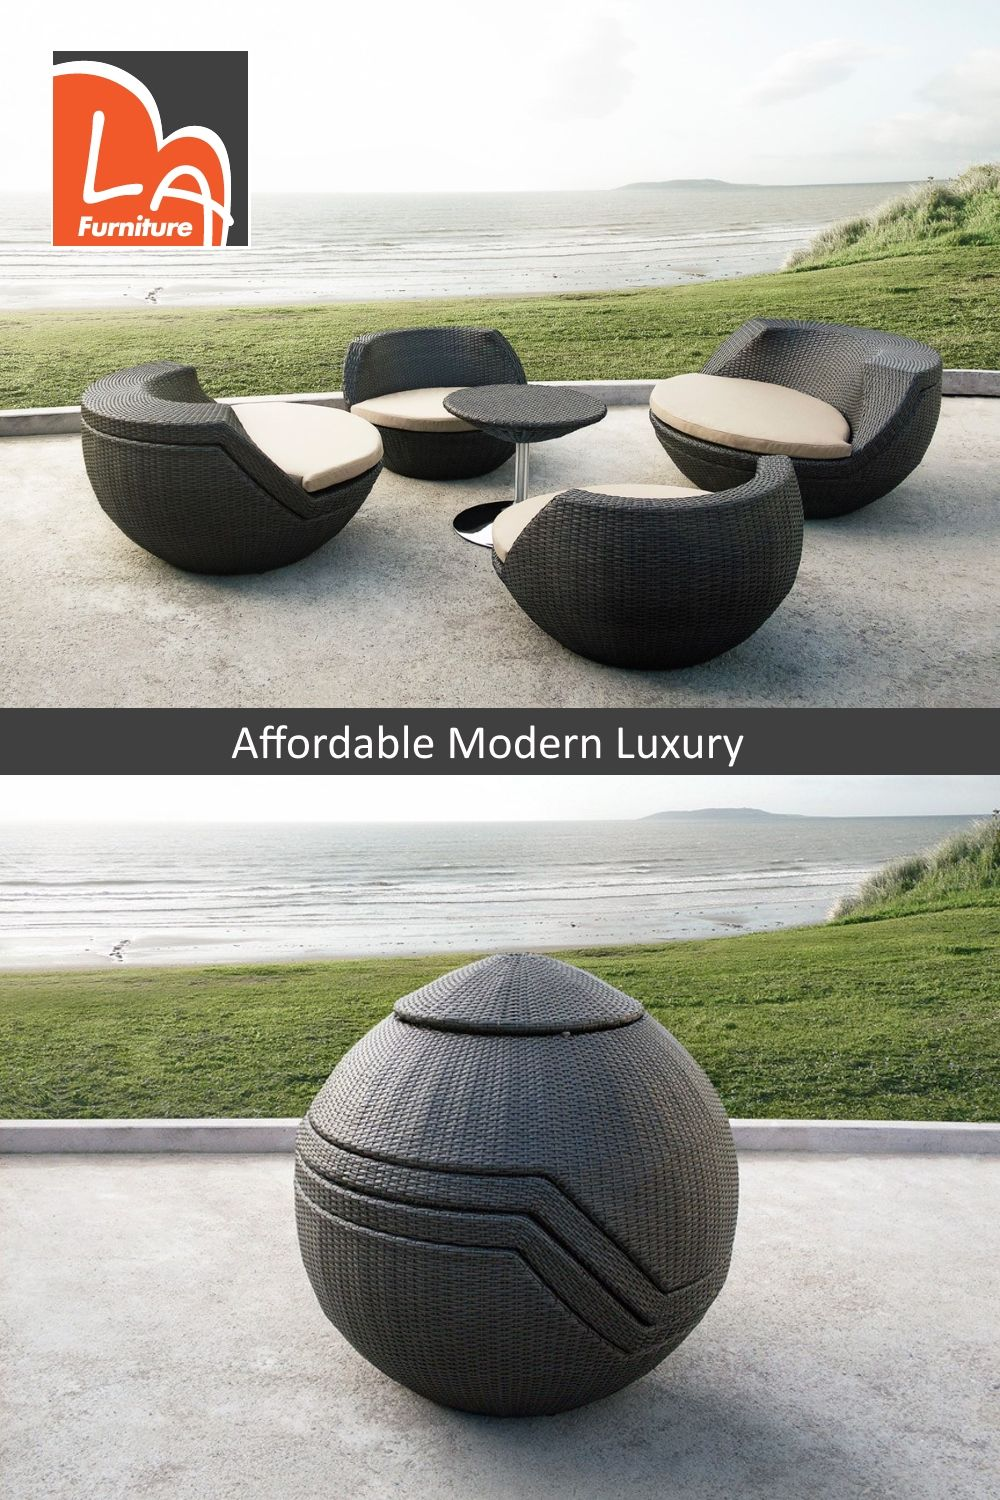 Well this is different!! An egg shaped wicker patio set ...